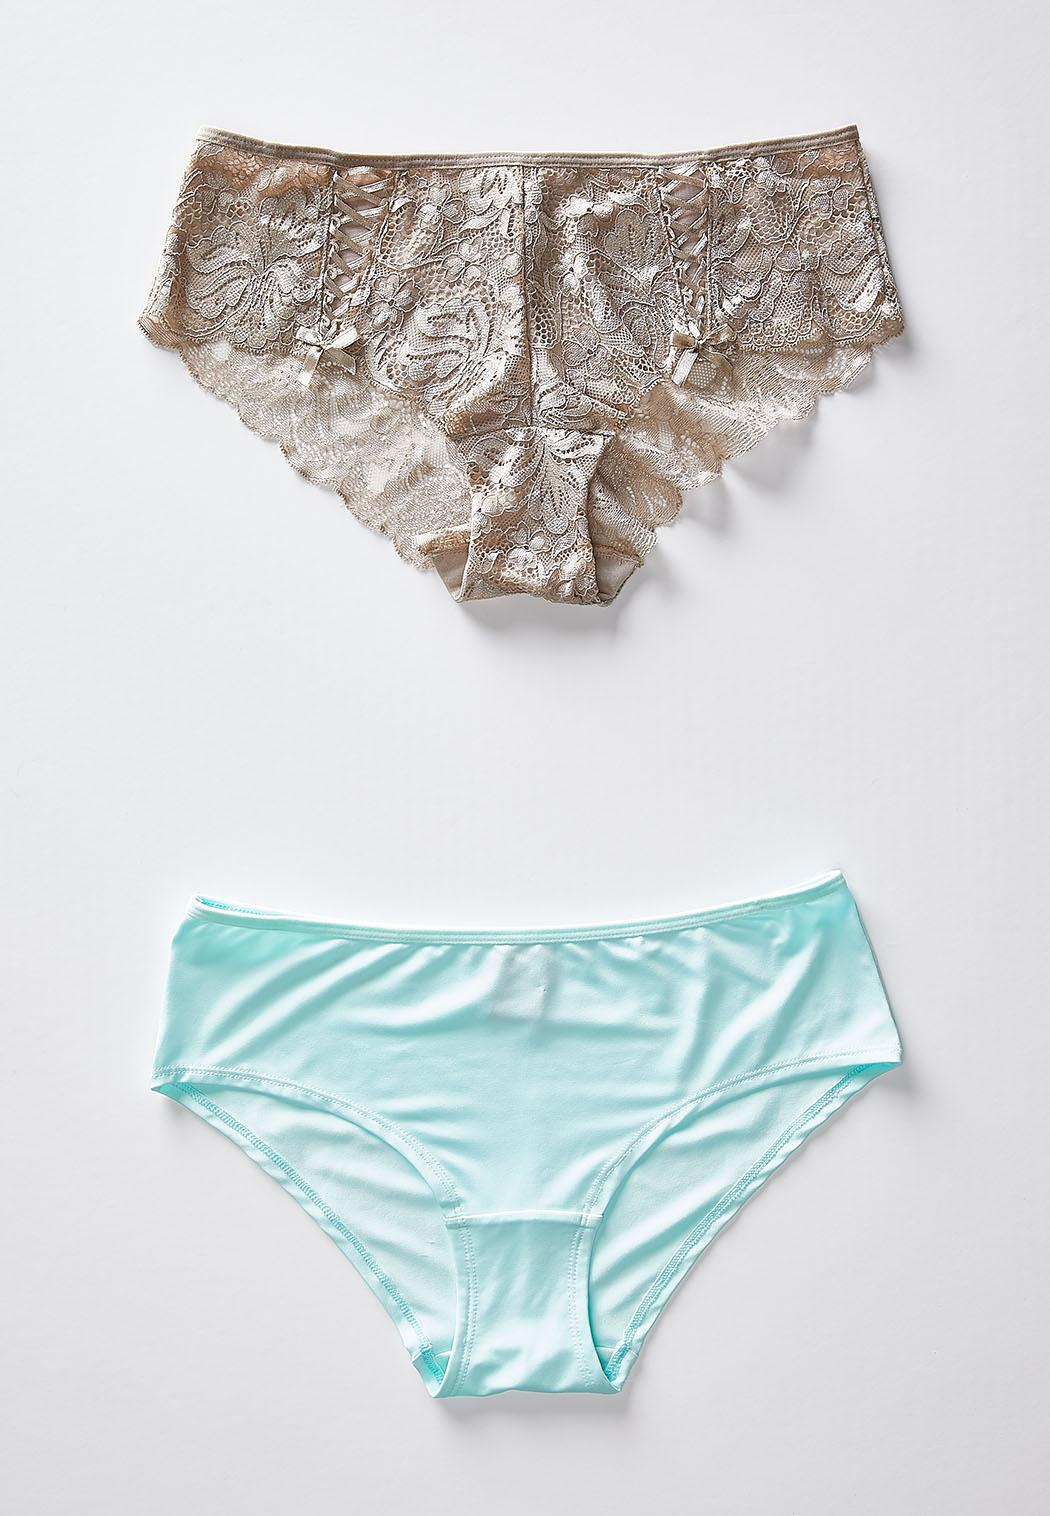 Tan Lace And Aqua Hipster Panty Set